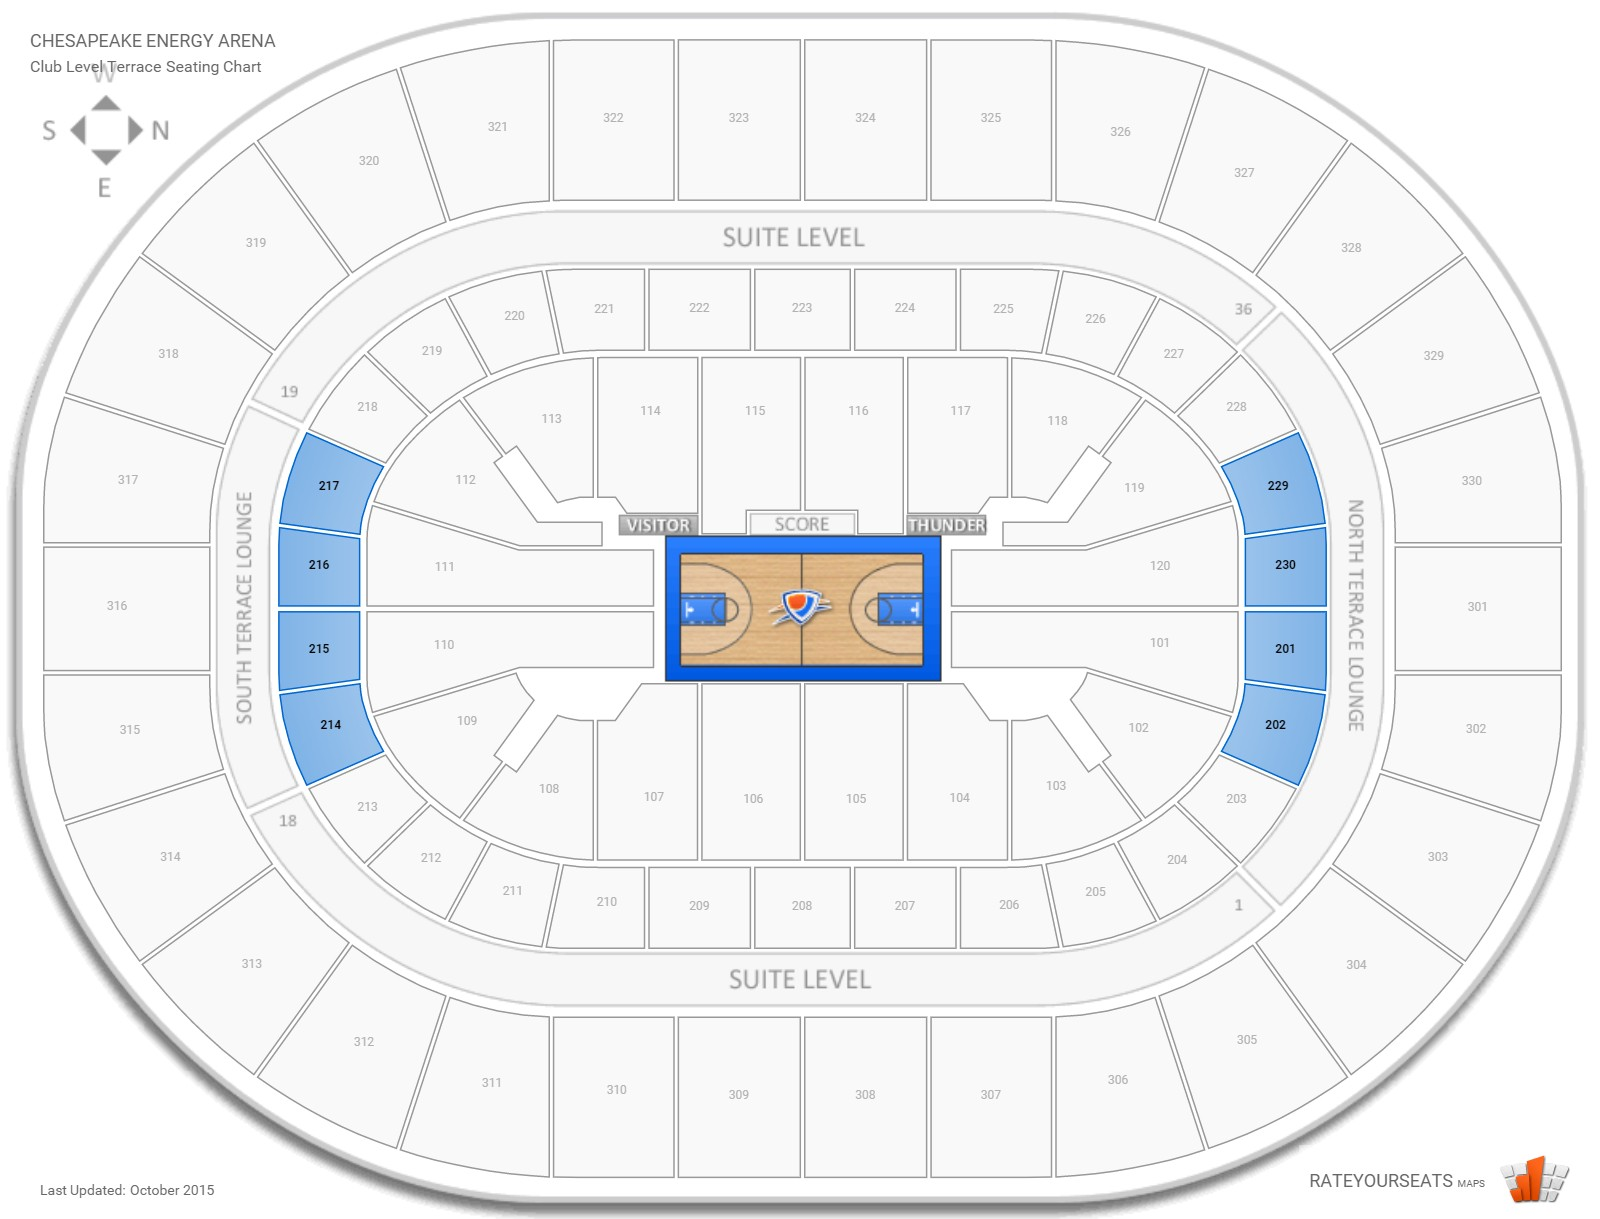 Chesapeake Energy Arena Club Level Lower Terrace seating chart